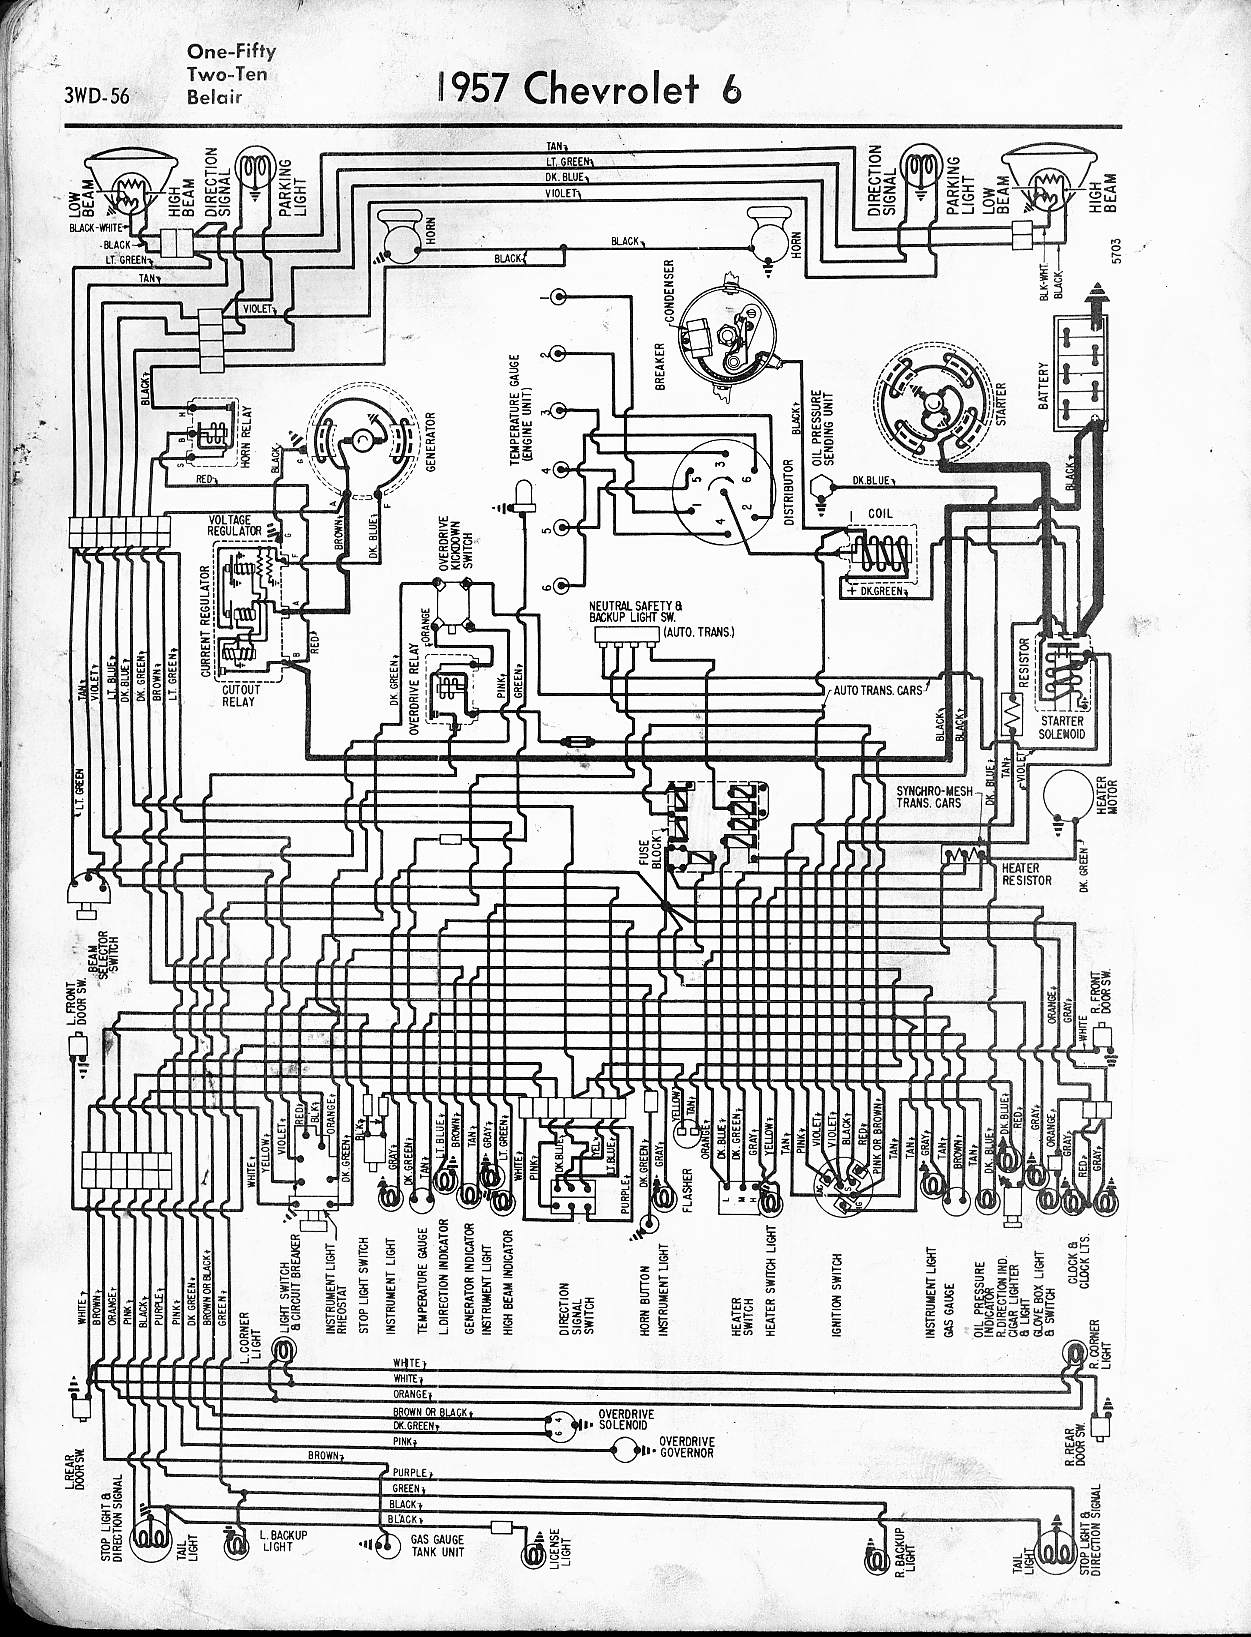 1966 Chevy Truck Heater Wiring Another Diagrams C 10 Fuse Box 1957 Bel Air Diagram Schematics Rh Caltech Ctp Com 1964 1976 C10